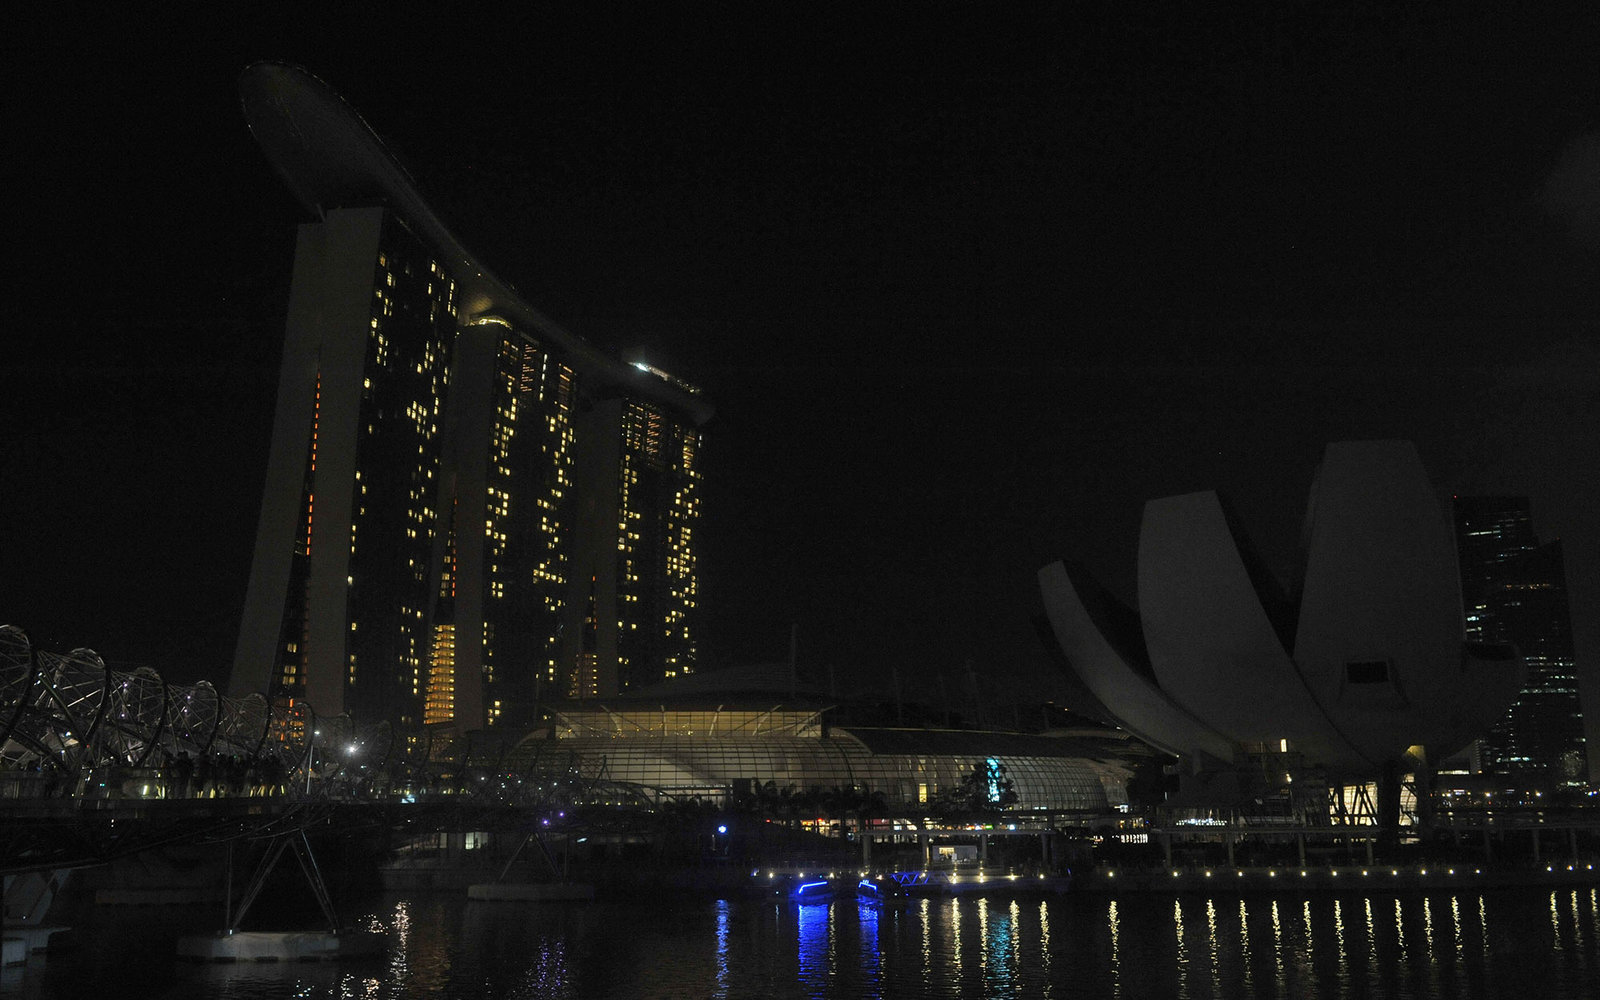 The Marina Bay Sands is pictured with its lights turned off during Earth Hour in Singapore on March 29, 2014. Lights will go out in some 7,000 cities and towns from New York to New Zealand for Earth Hour which this year aims to raise hundreds of thousands